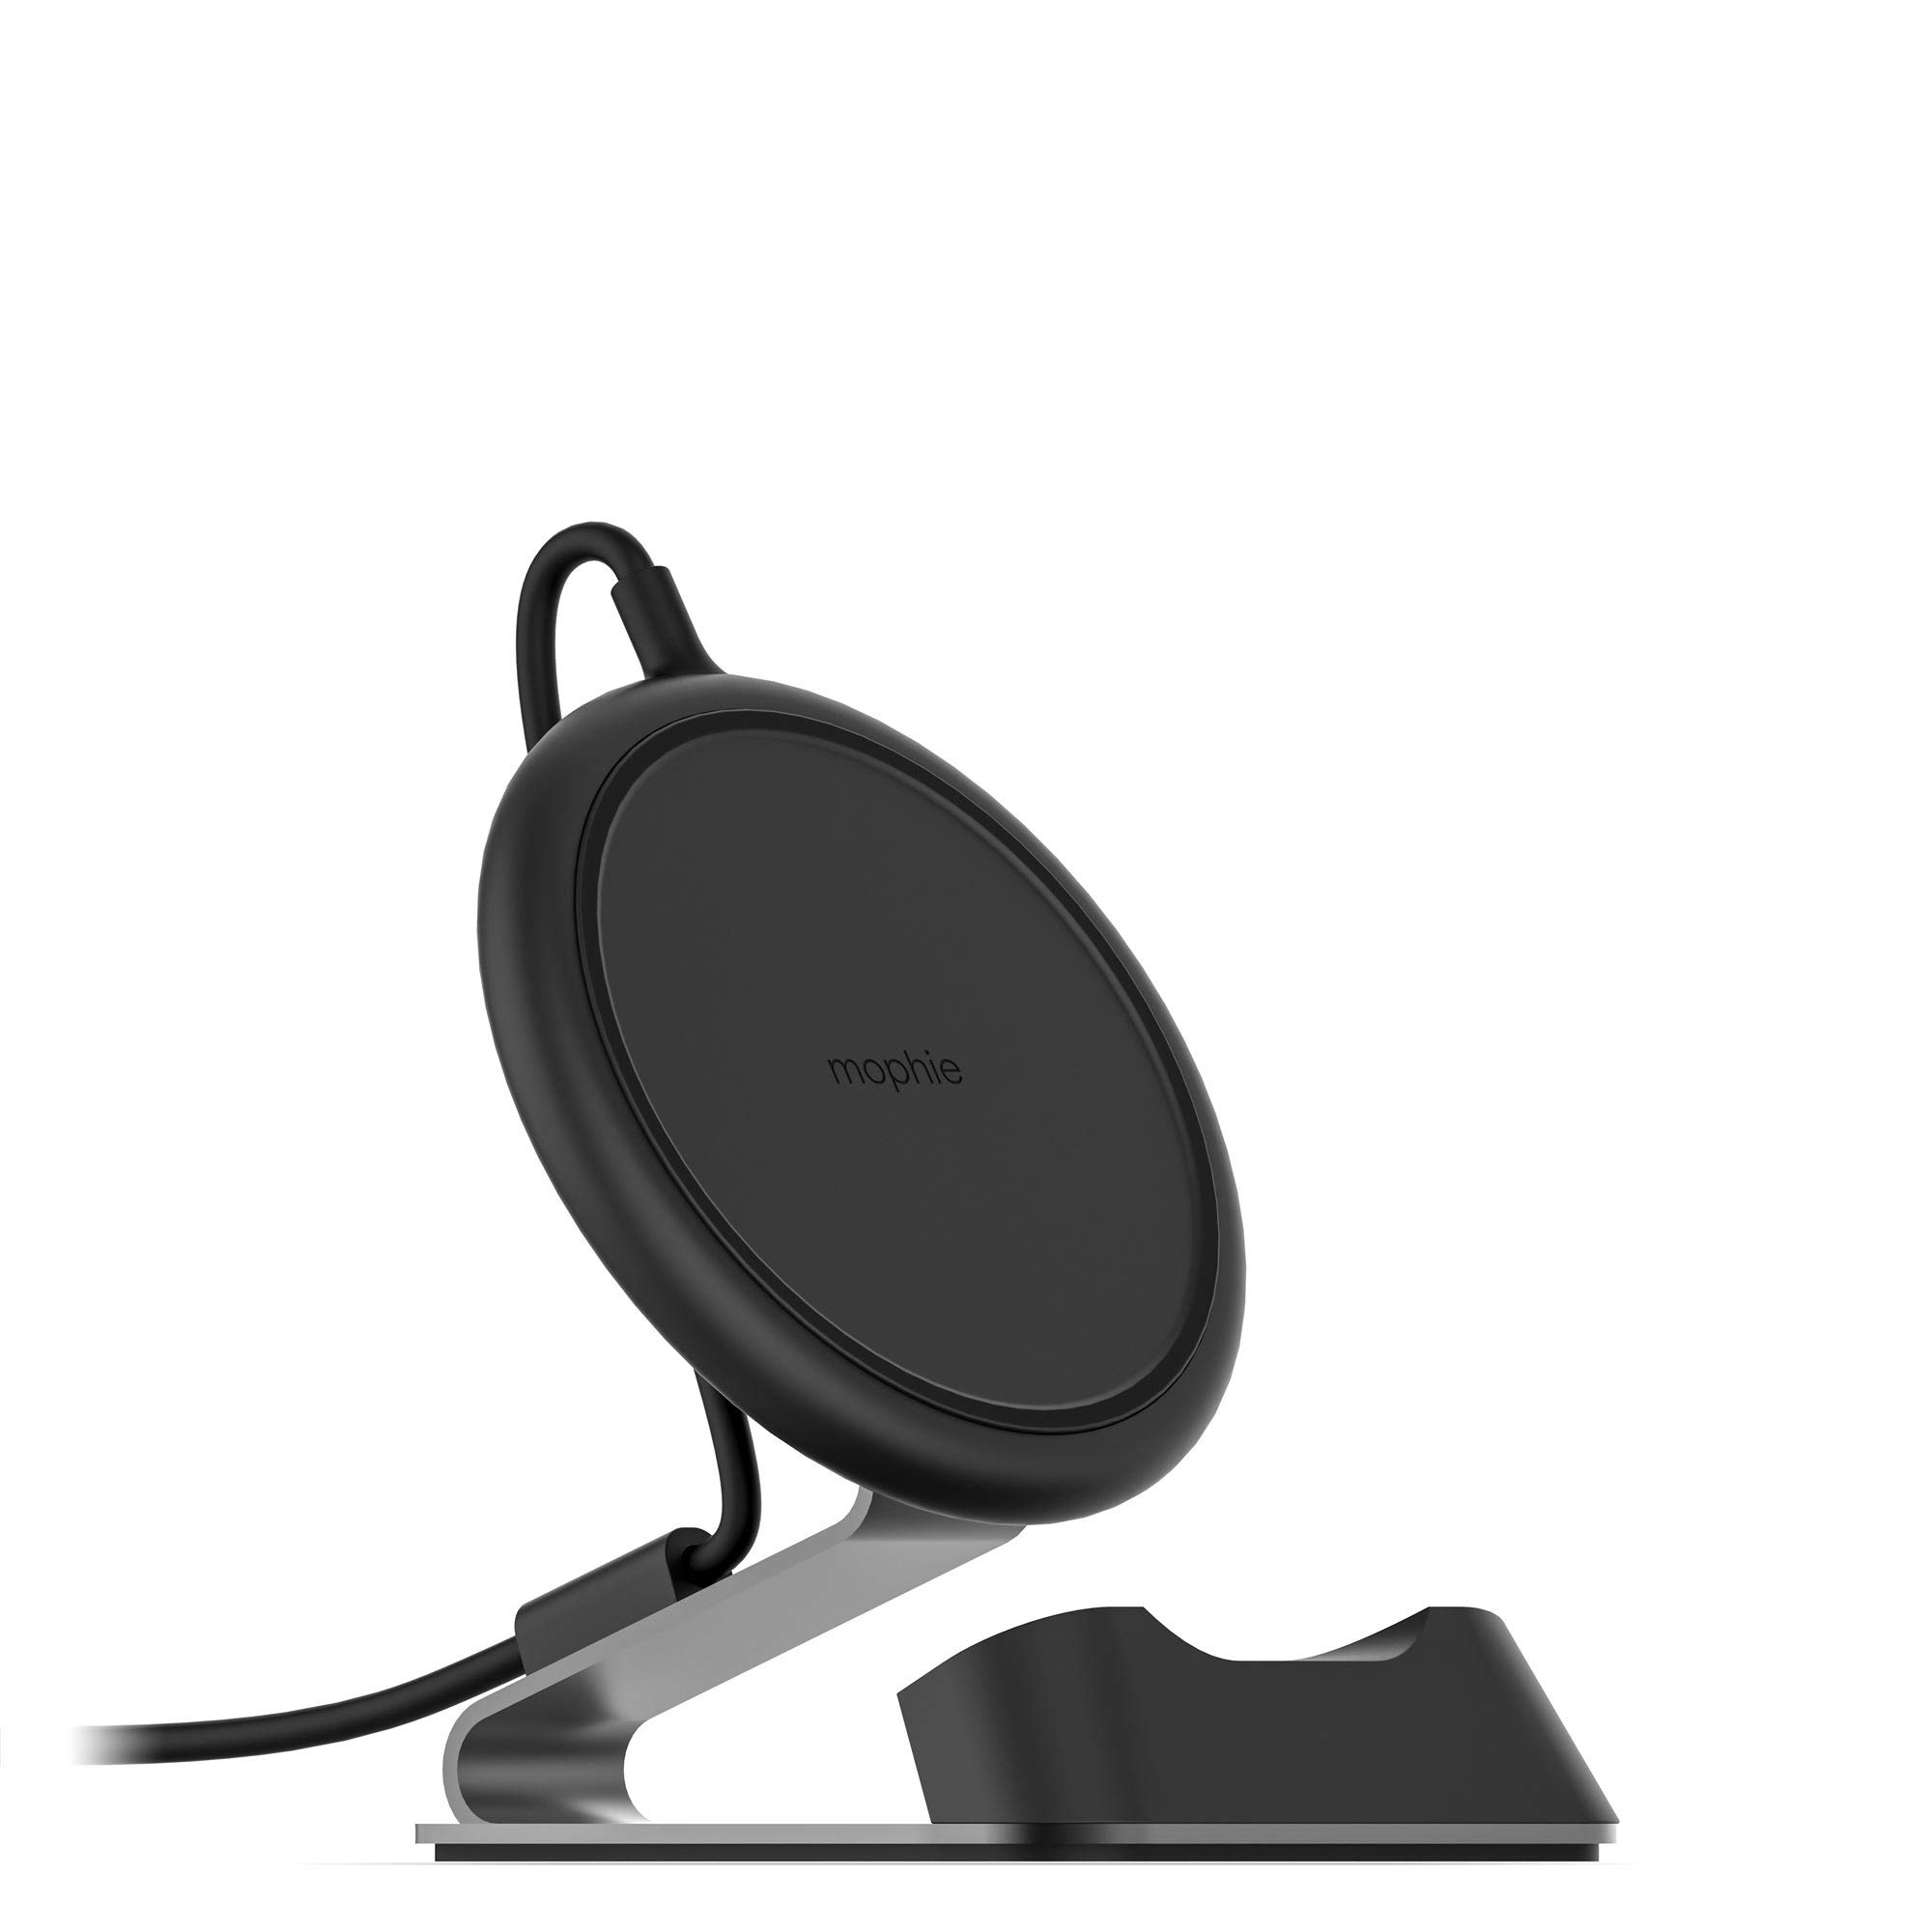 mophie Charge Stream Desk Stand Made for Apple iPhone Xs/X, iPhone Xs Max, iPhone XR, iPhone 8 Plus, iPhone 8, Samsung, and Other Qi-Enabled Devices - Black by mophie